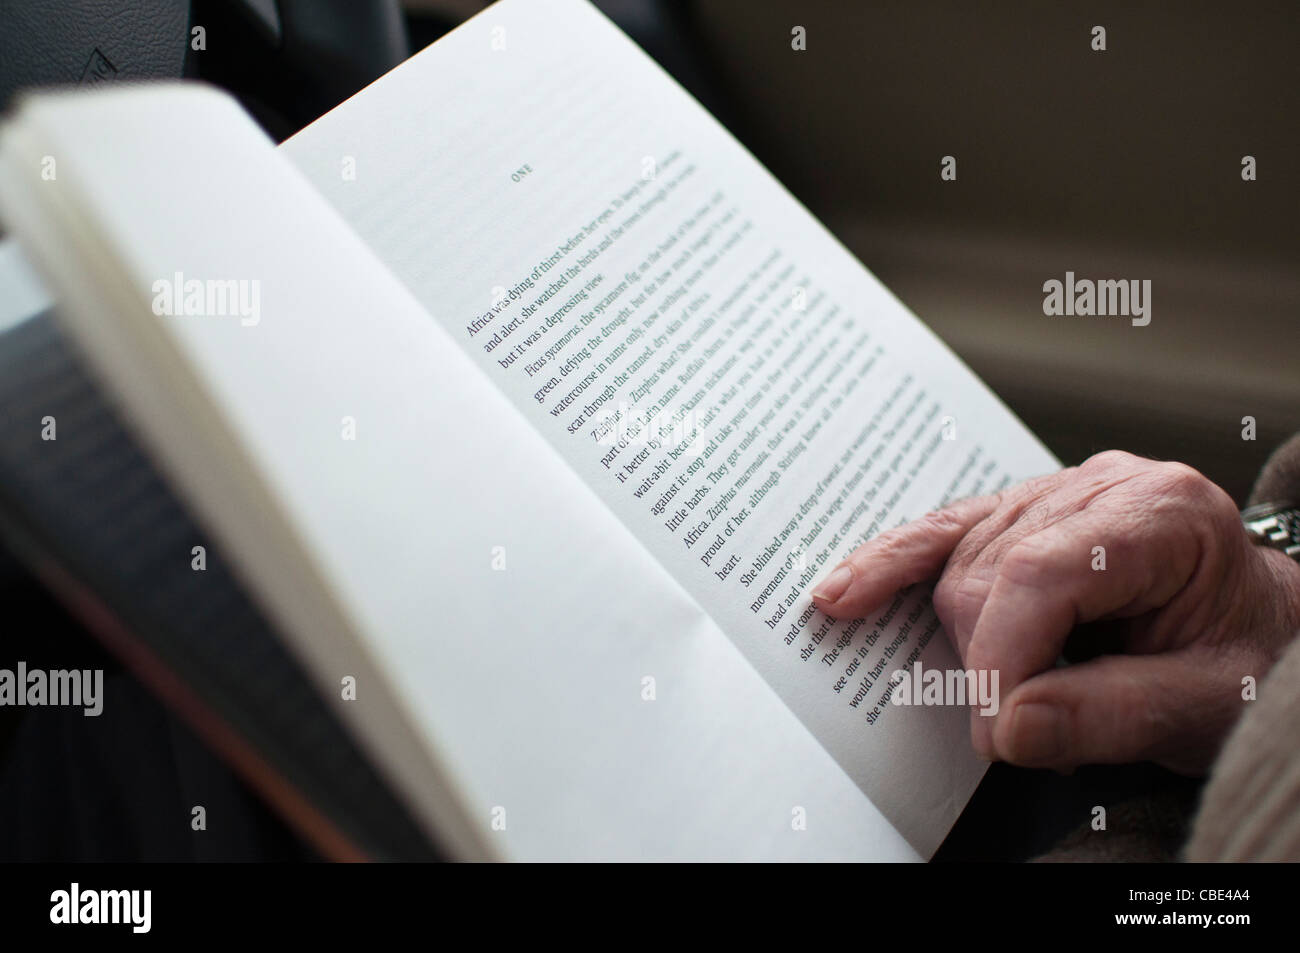 Close Up of a Hand of a Male Tracing Text with Finger, Whilst Reading A Book. - Stock Image